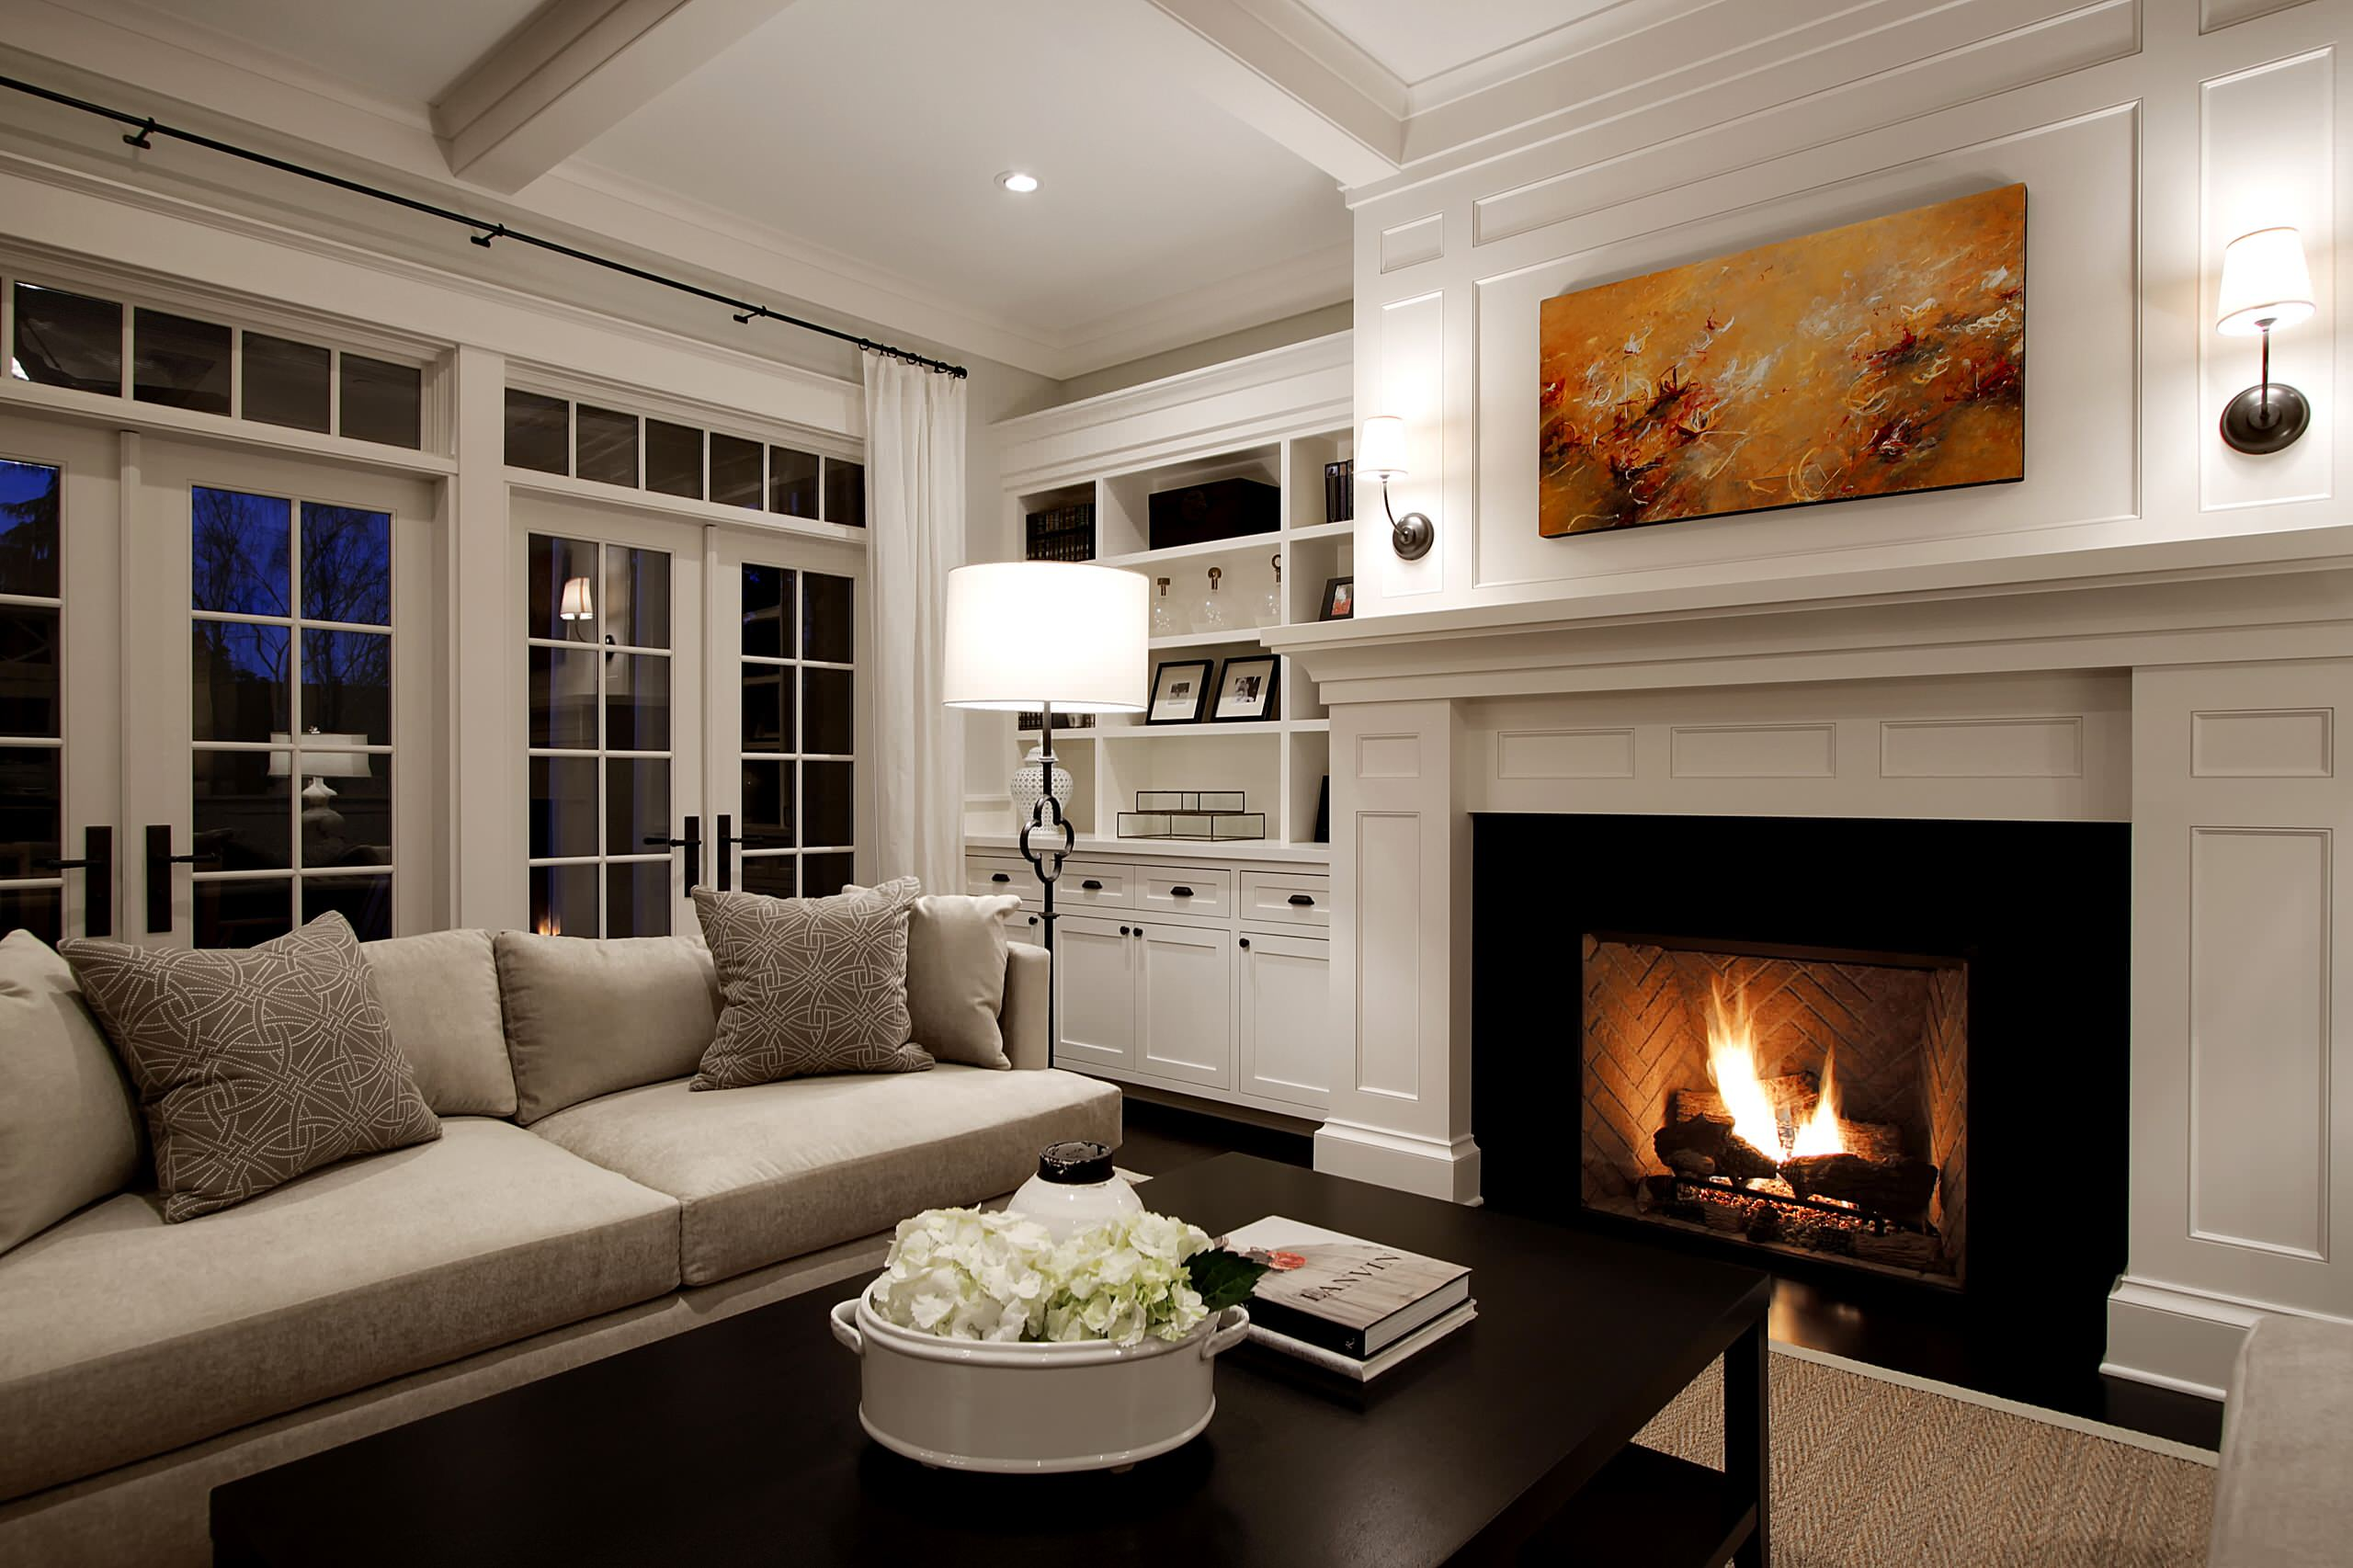 75 Beautiful Living Room With A Standard Fireplace Pictures Ideas February 2021 Houzz